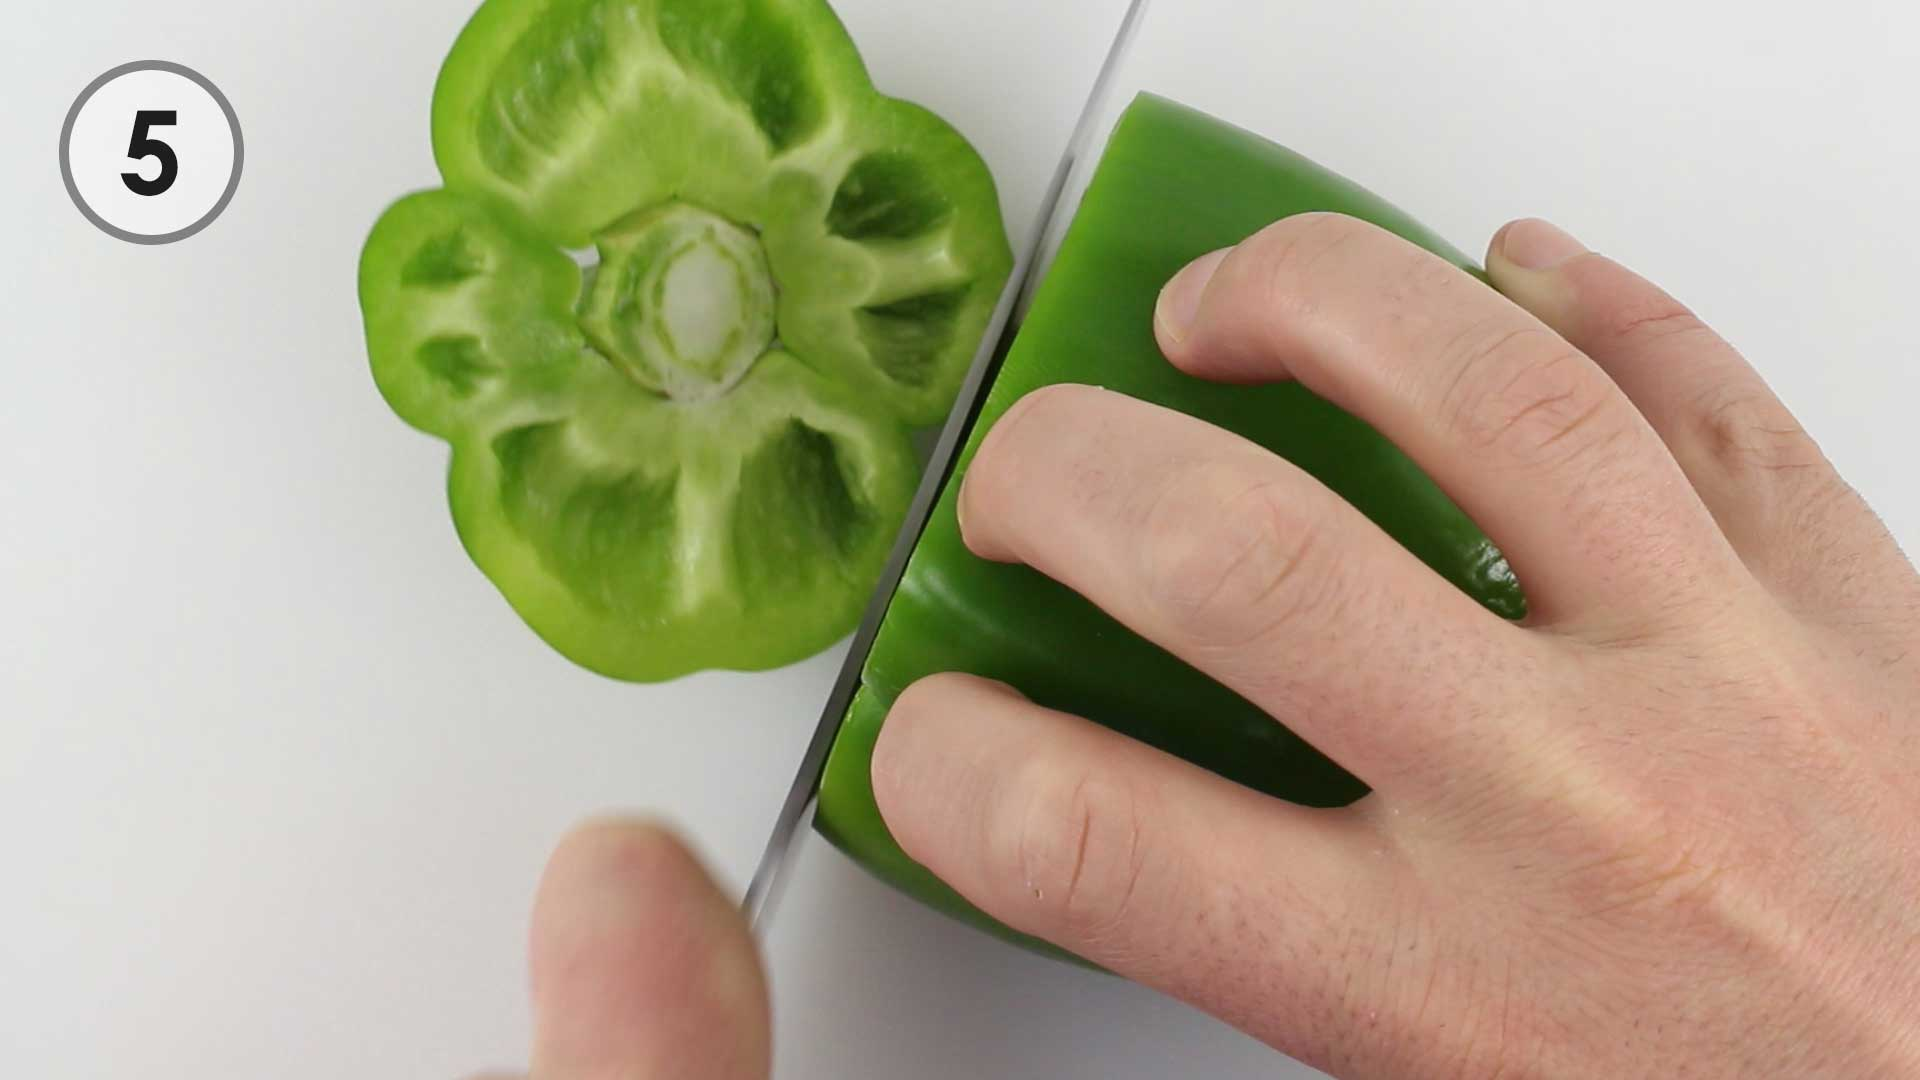 Step 5. Slicing off the top of a bell pepper.